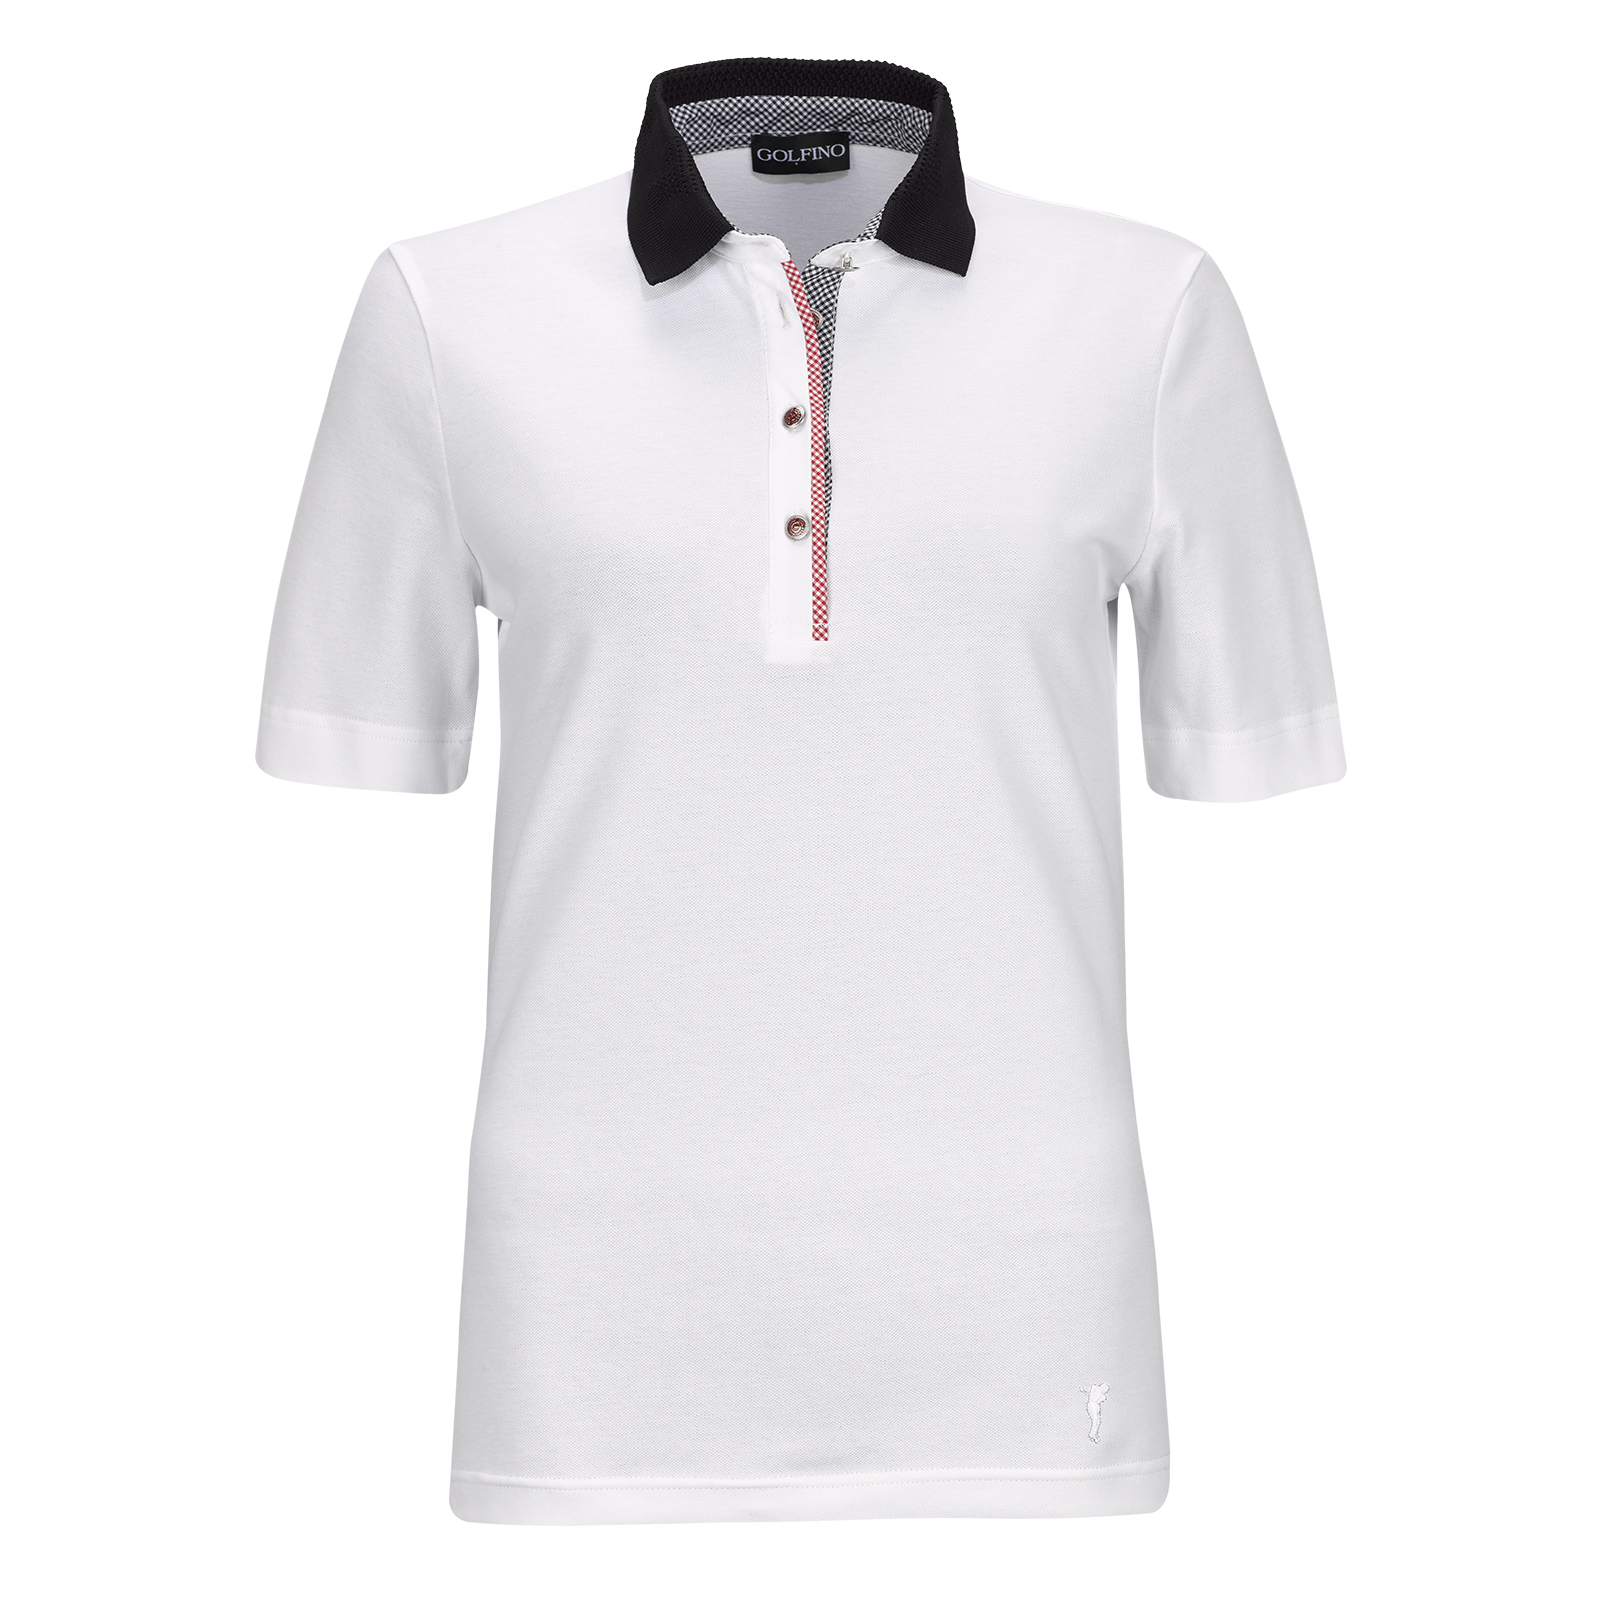 Damen Kurzarm Cotton Blend Golfpolo mit Vichy Muster und Stretchfunktion